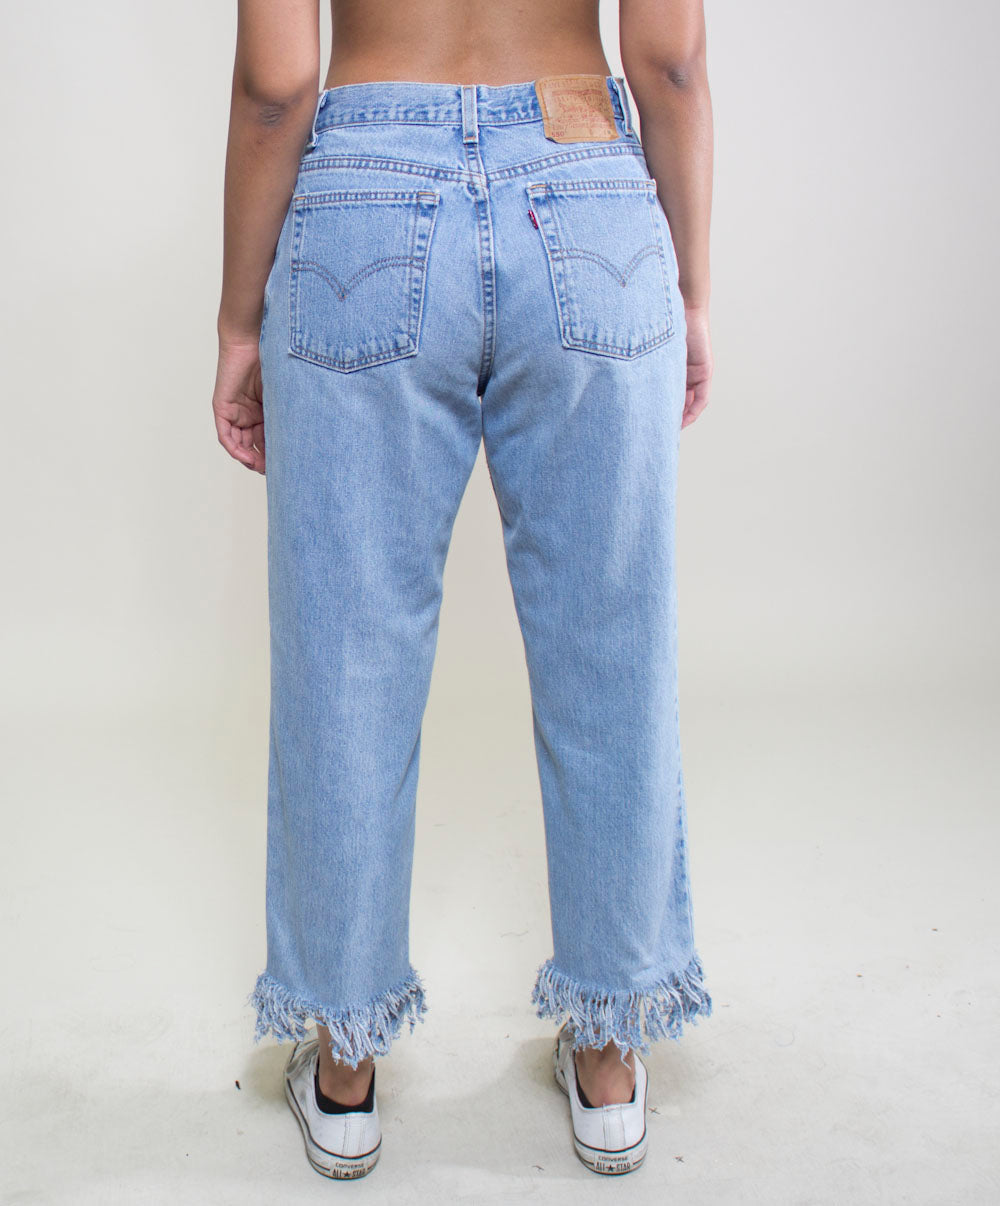 Frayed Edge Jean